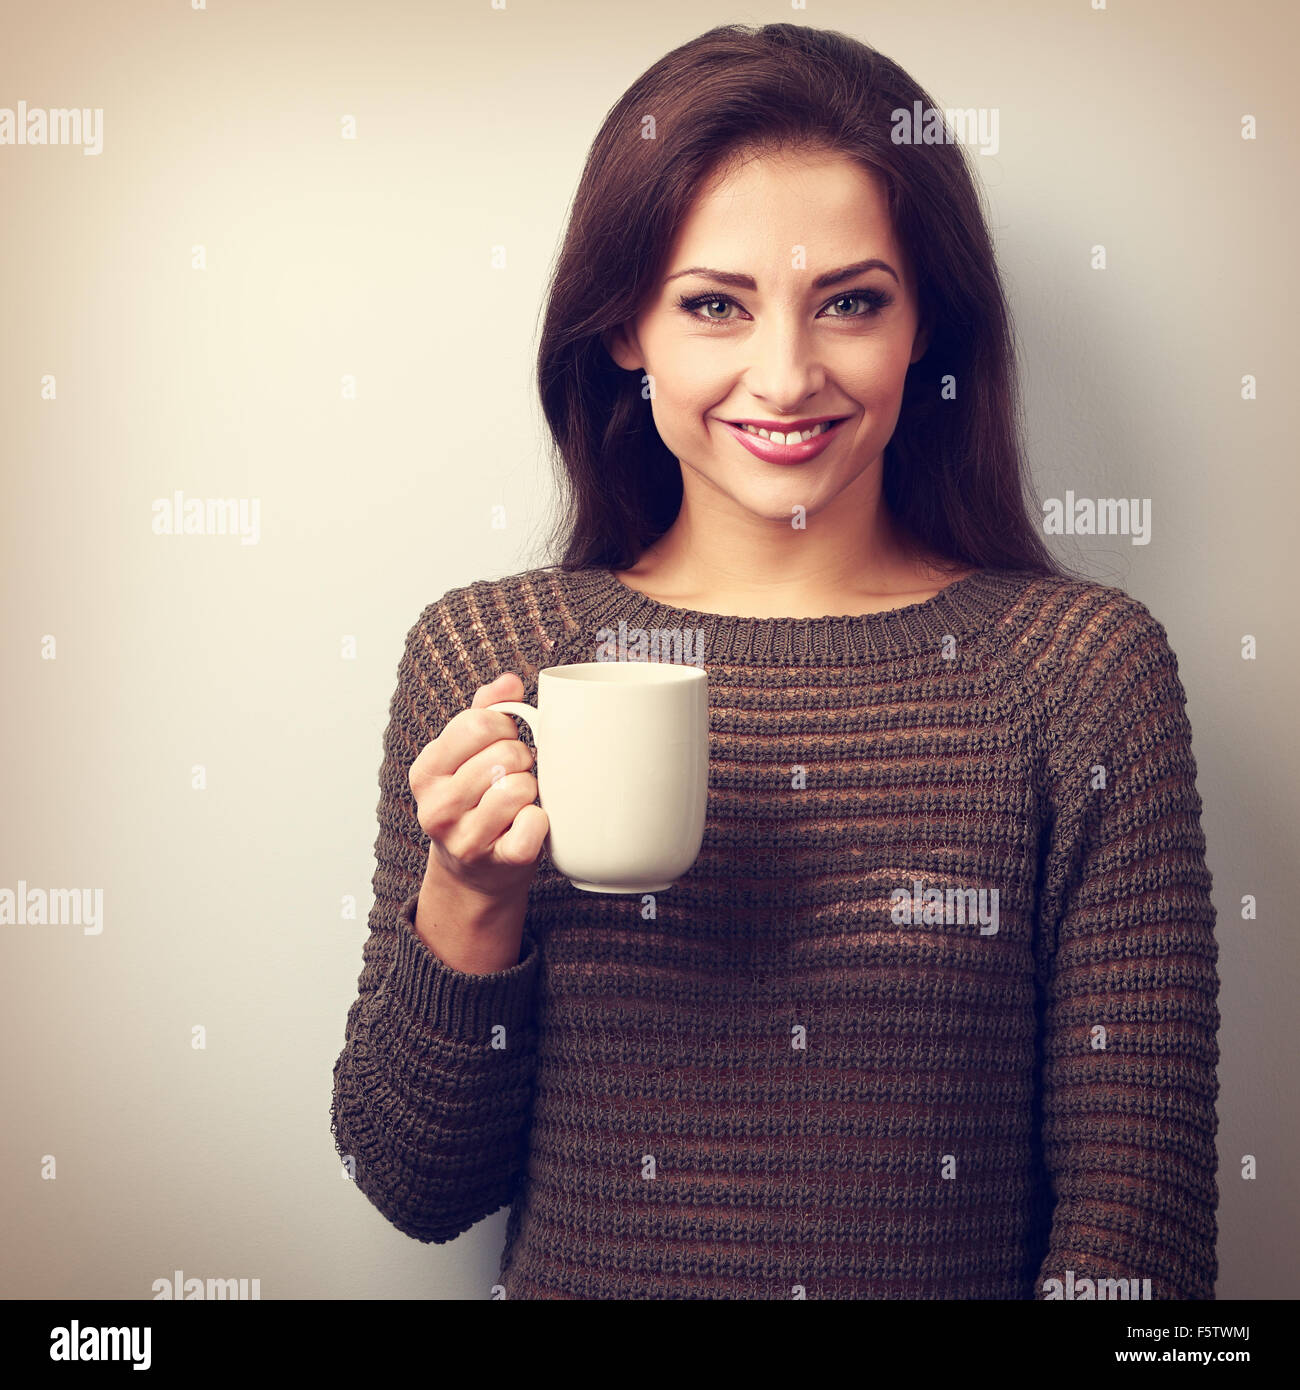 Smiling casual young woman with cup of tea looking happy. Vintage portrait - Stock Image